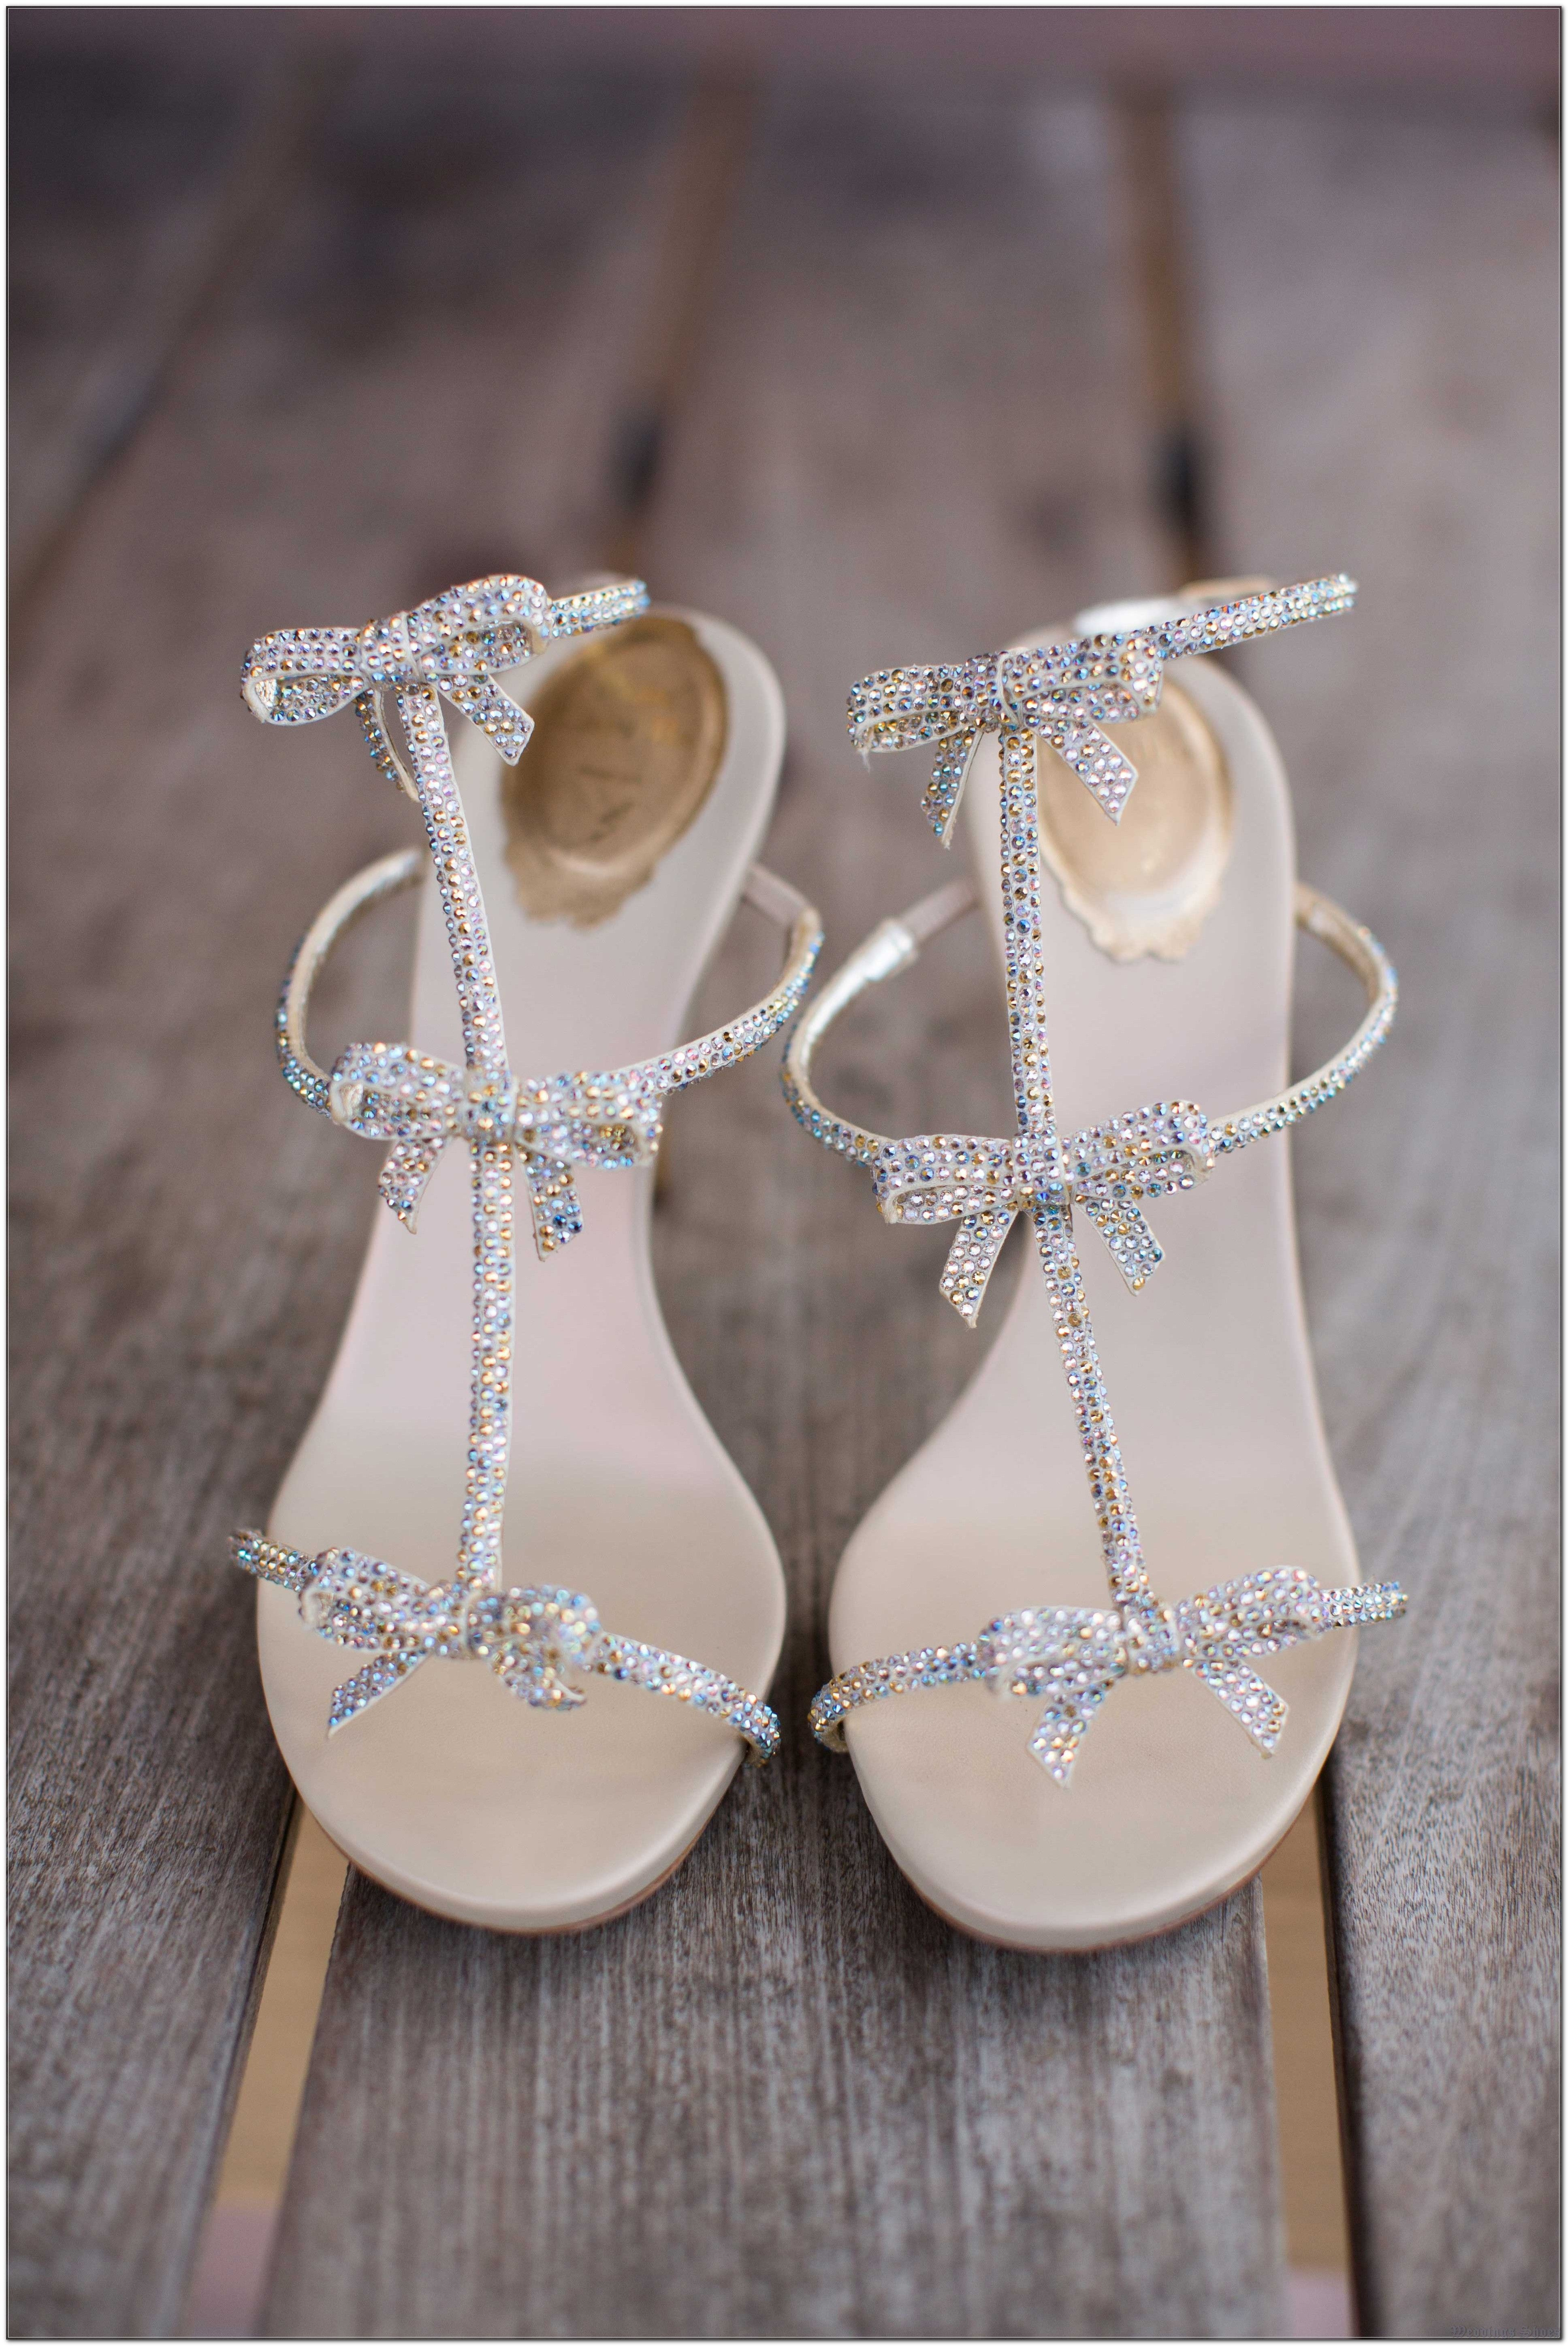 Improve(Increase) Your Wedding Shoes In 3 Days